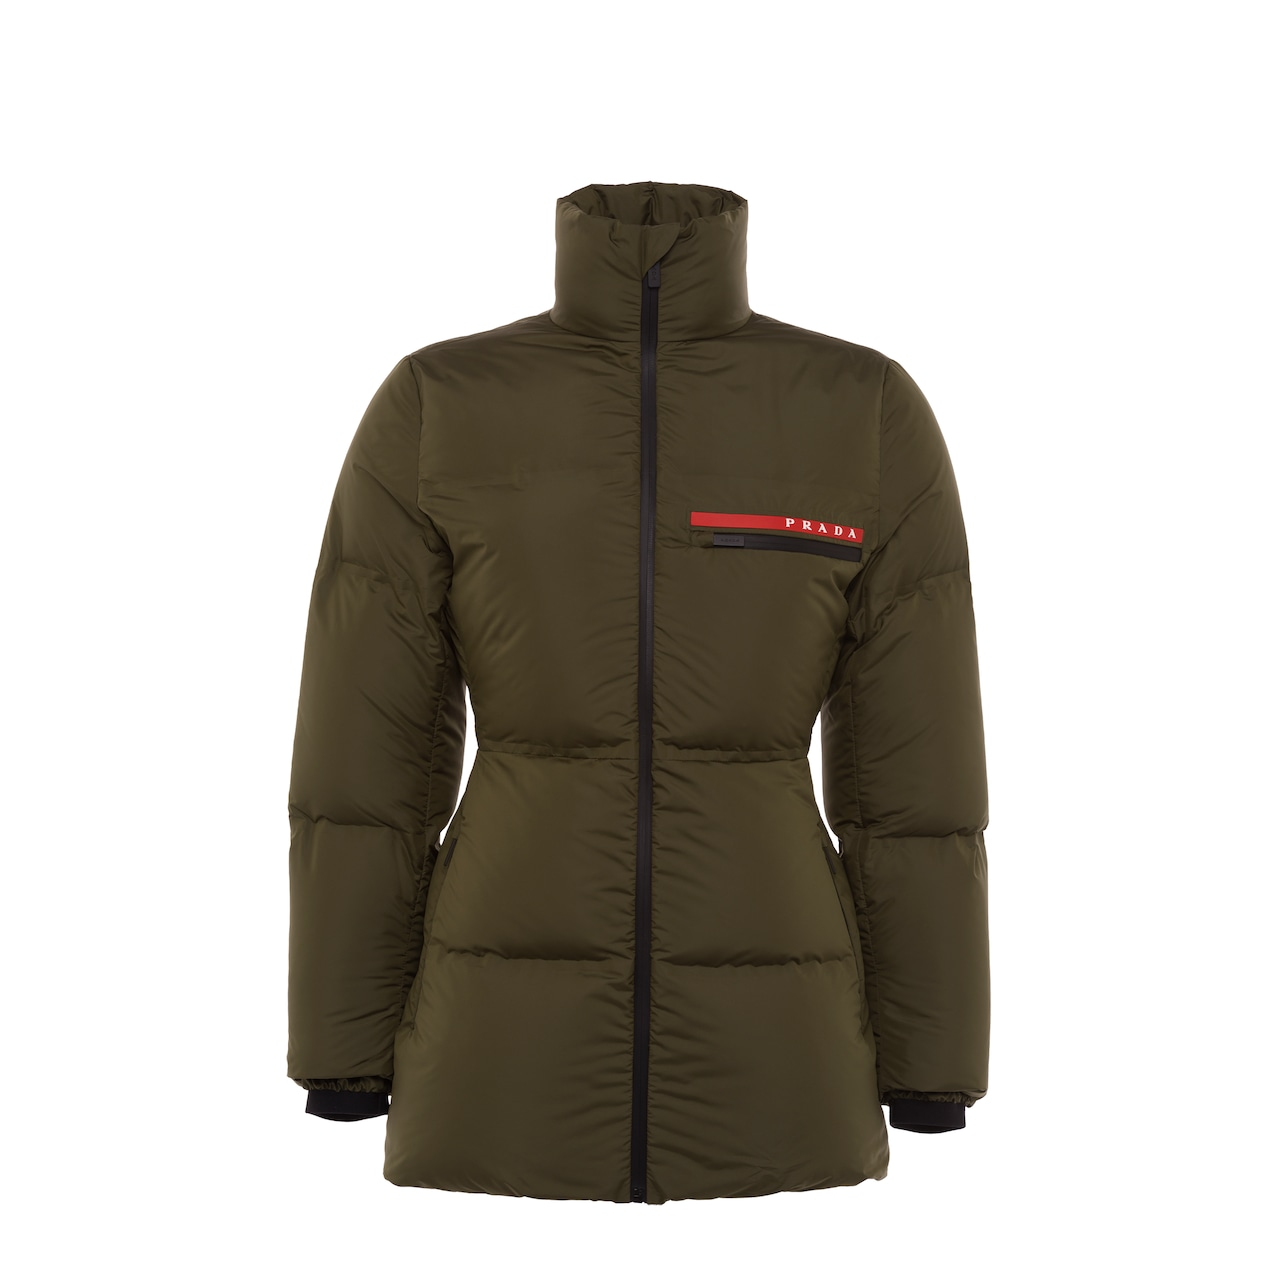 Prada LR-HX15 technical nylon puffer jacket 1